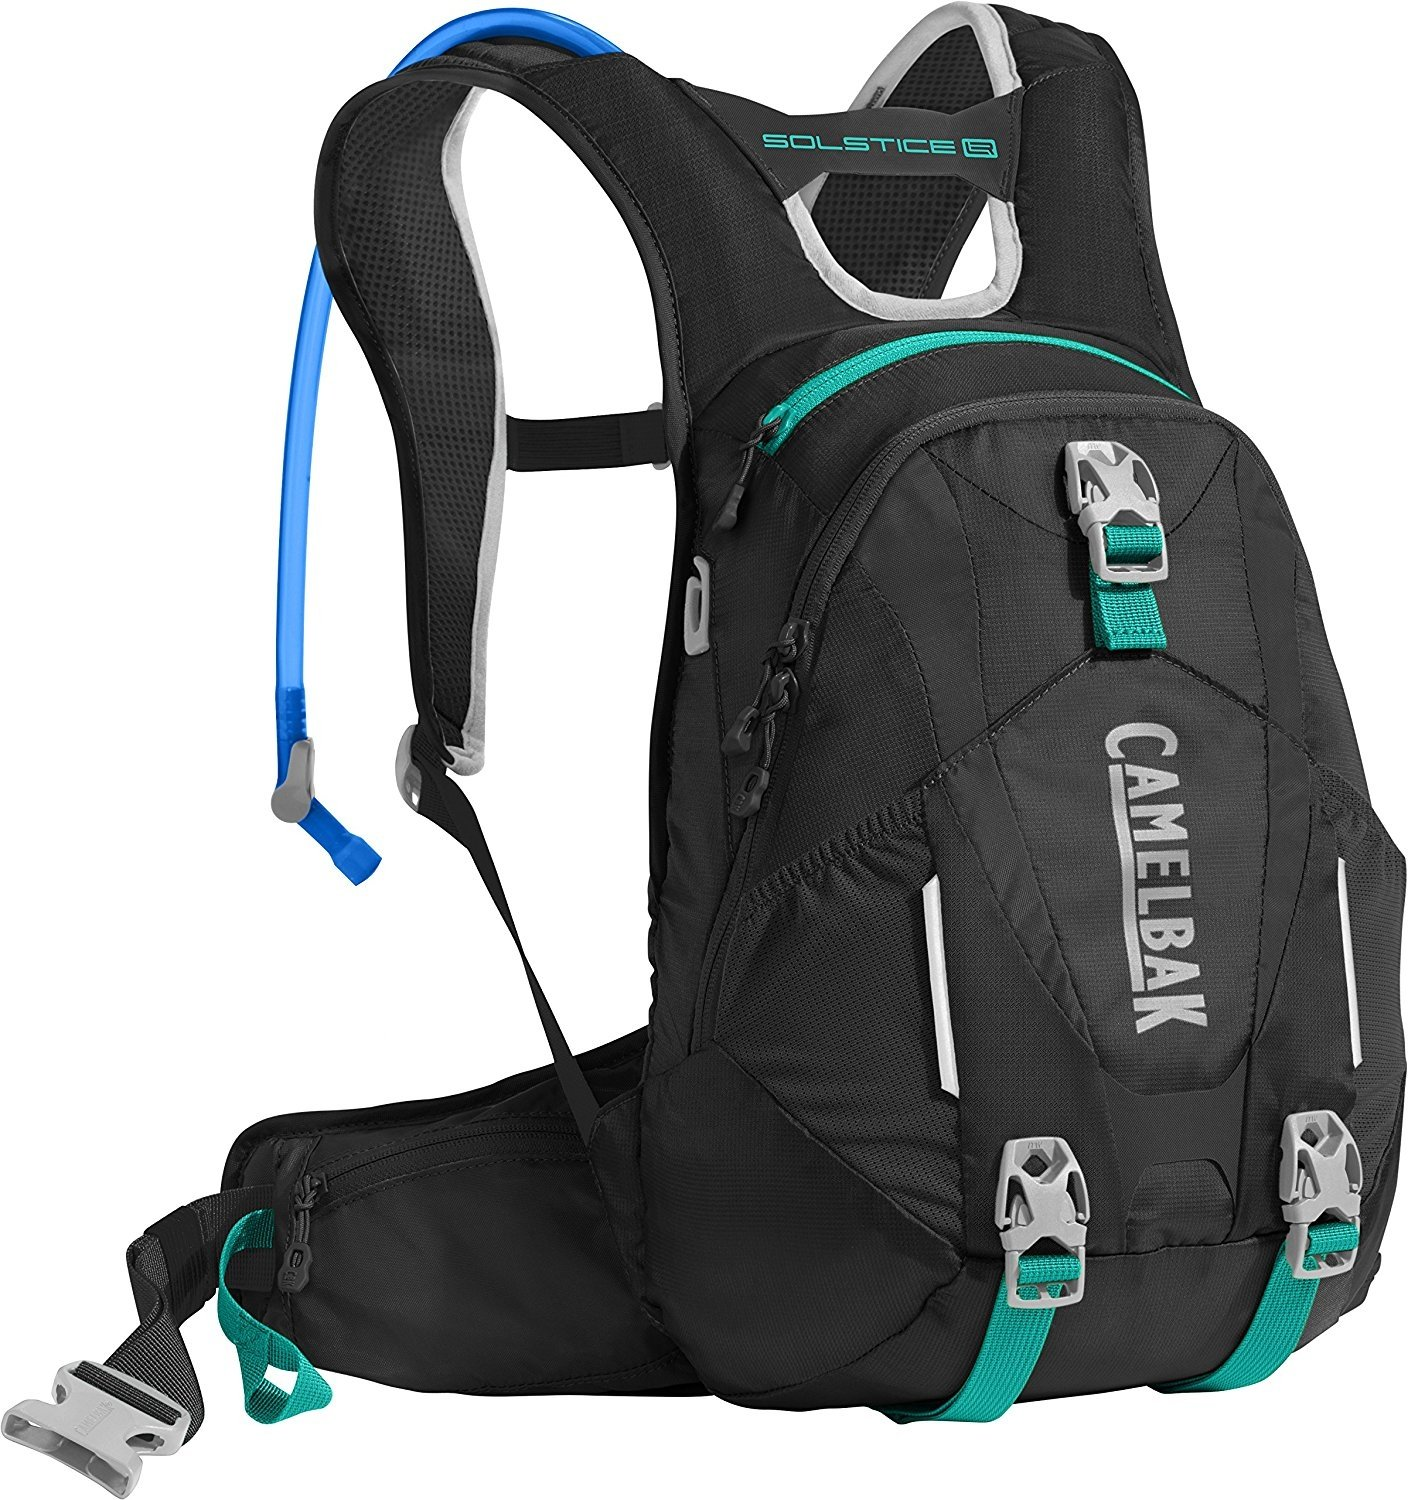 CamelBak Women's Solstice 10 LR Hydration Pack by CamelBak Products LLC